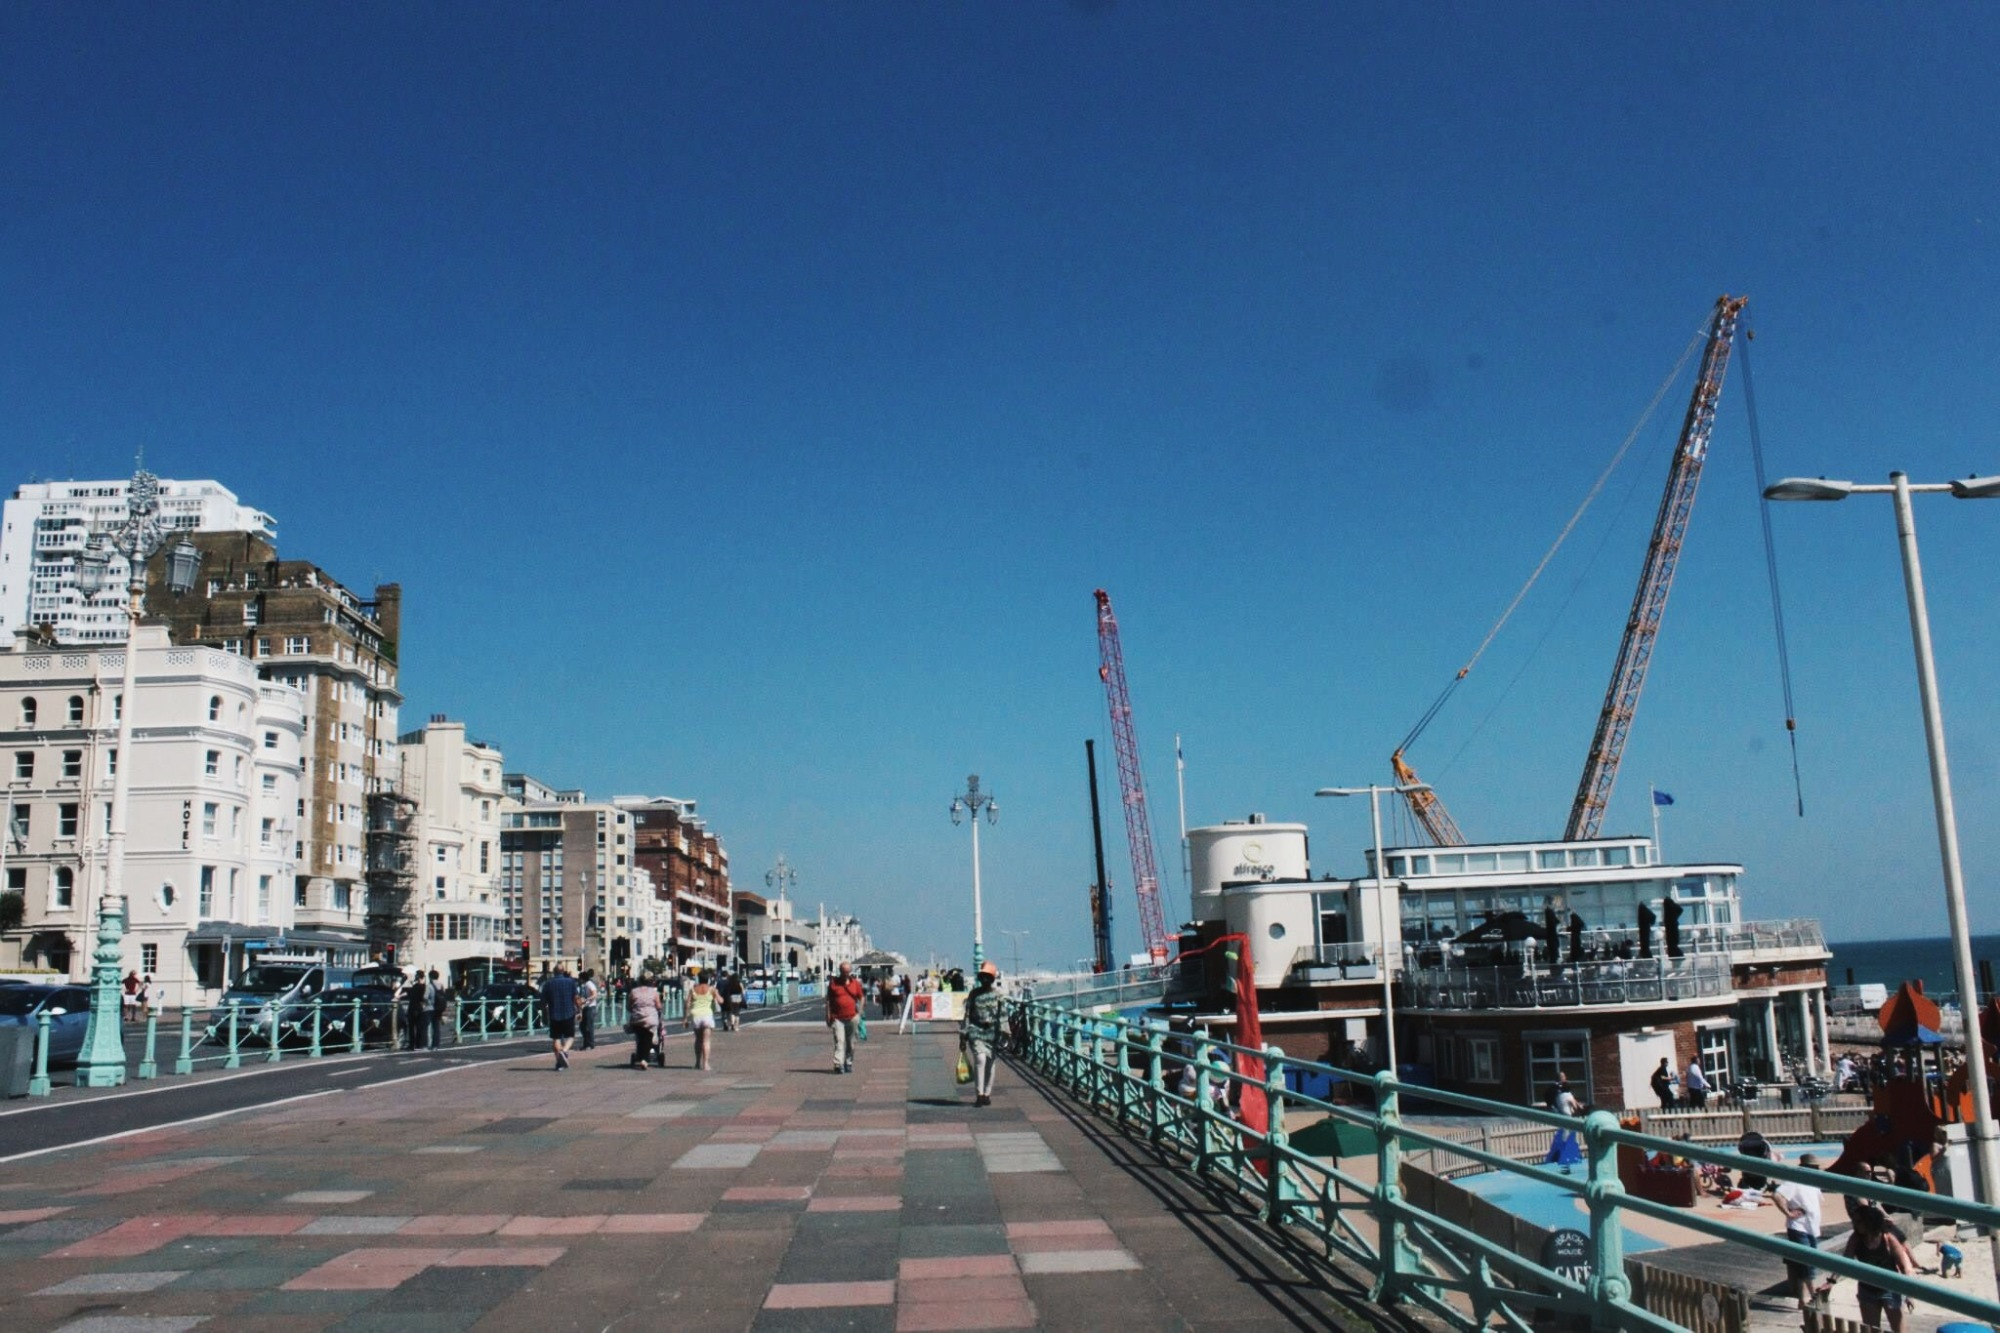 the-nat-channel-england-britain-brighton-beach-walkway-paveway-pedestrian